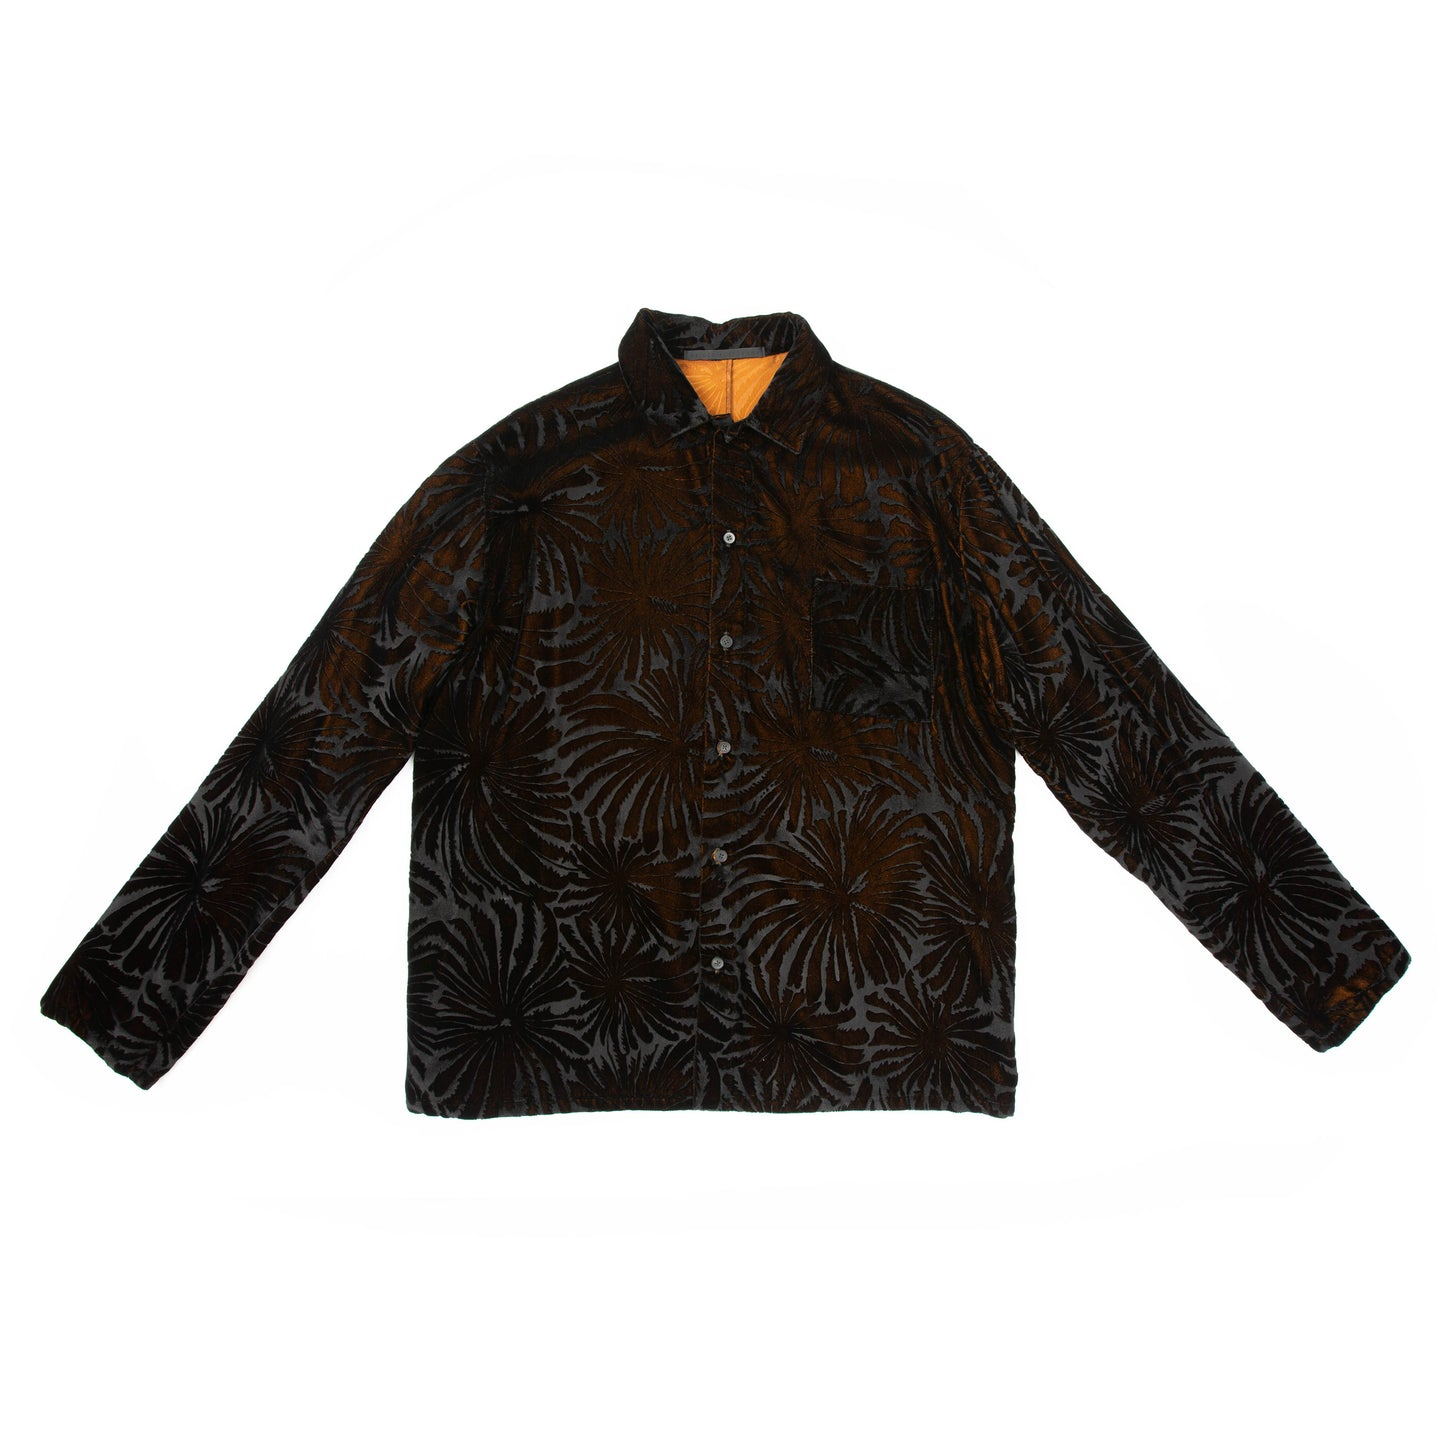 FW18 Velvet Palm Tree Shirt